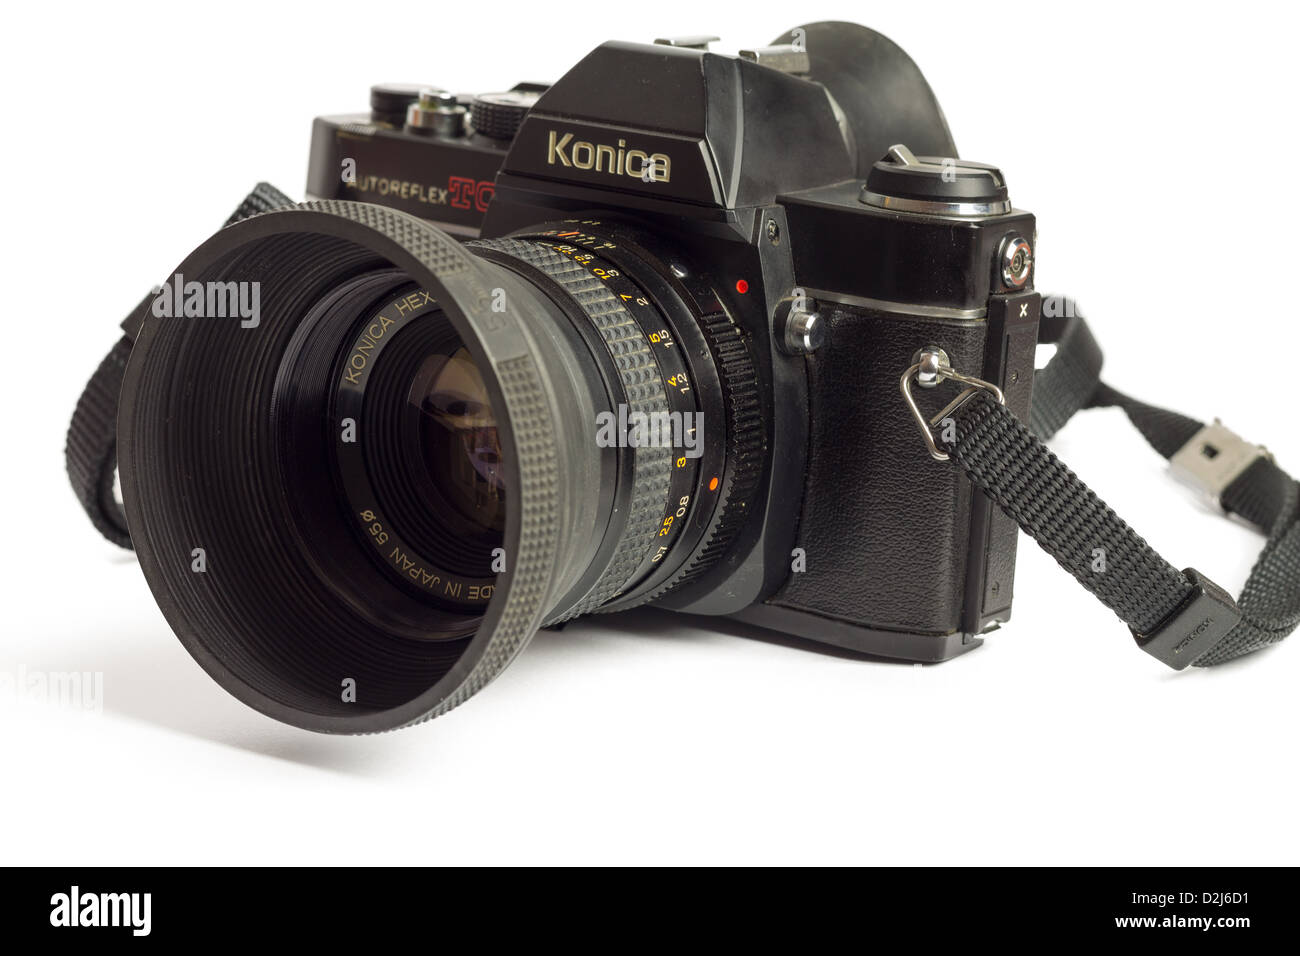 Analogue SLR (Konika Autoreflex TC, in Japan known as ACOM-1 SLR) which was built between 1976 and 1982. - Stock Image